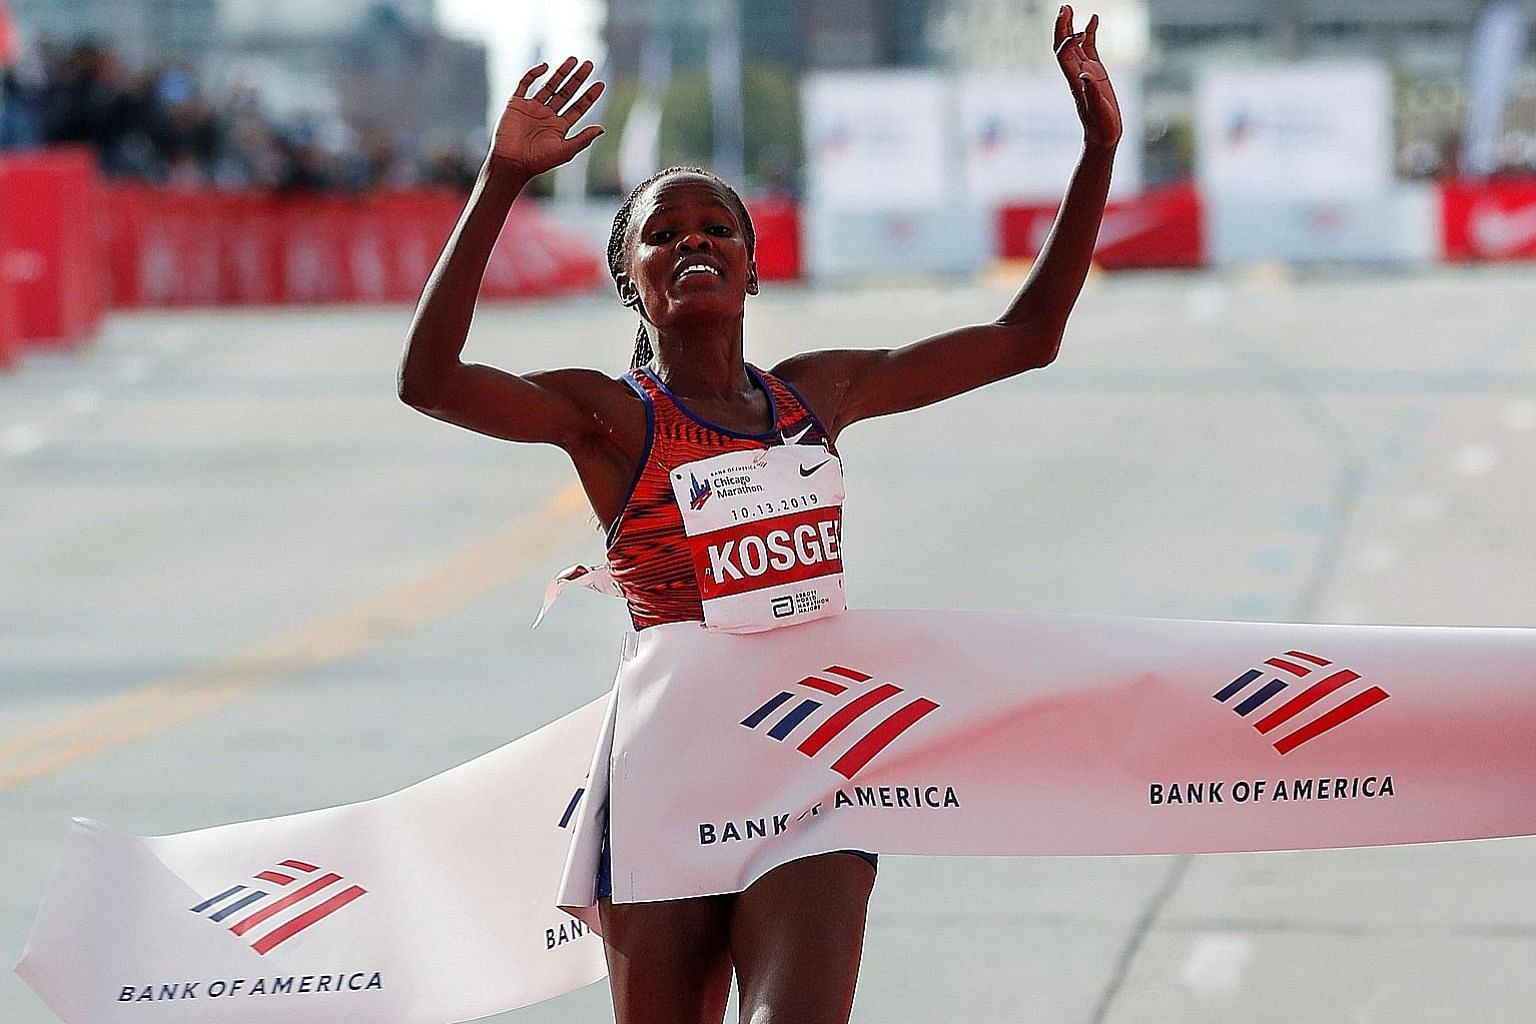 Brigid Kosgei crosses the Chicago Marathon finish line in 2:14:04 to smash Paula Radcliffe's world mark by a whopping 1:21. PHOTO: REUTERS